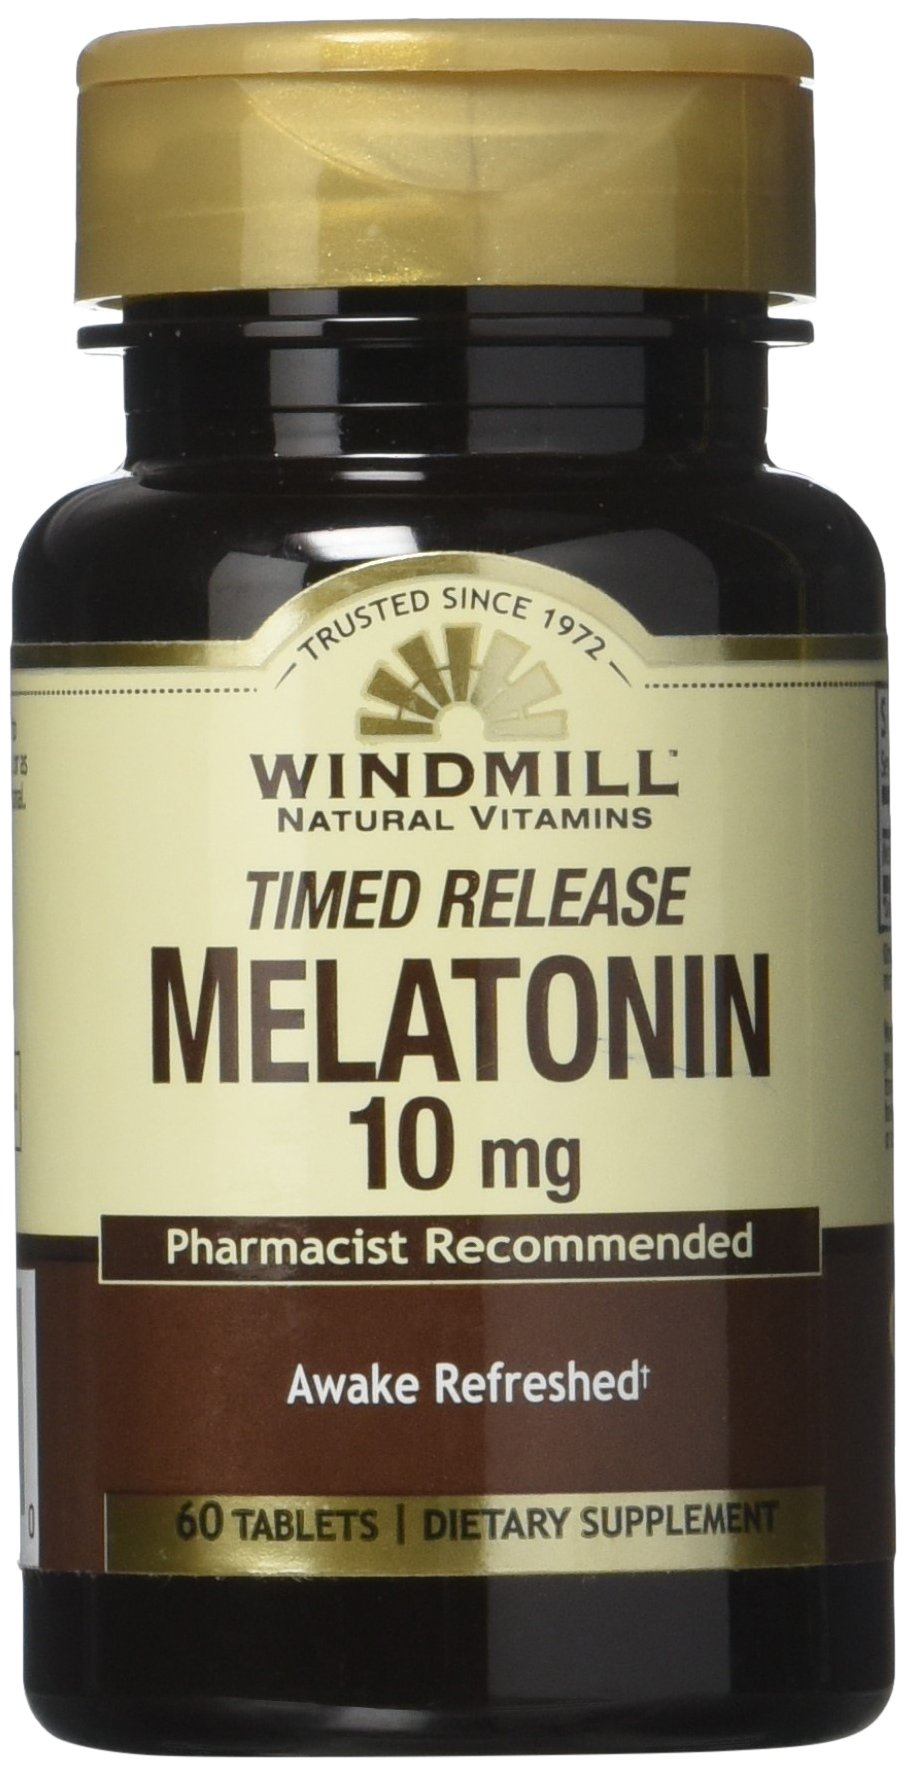 Amazon.com: Windmill Melatonin Tabs, 10 mg, T/R Wmill 60: Health & Personal Care